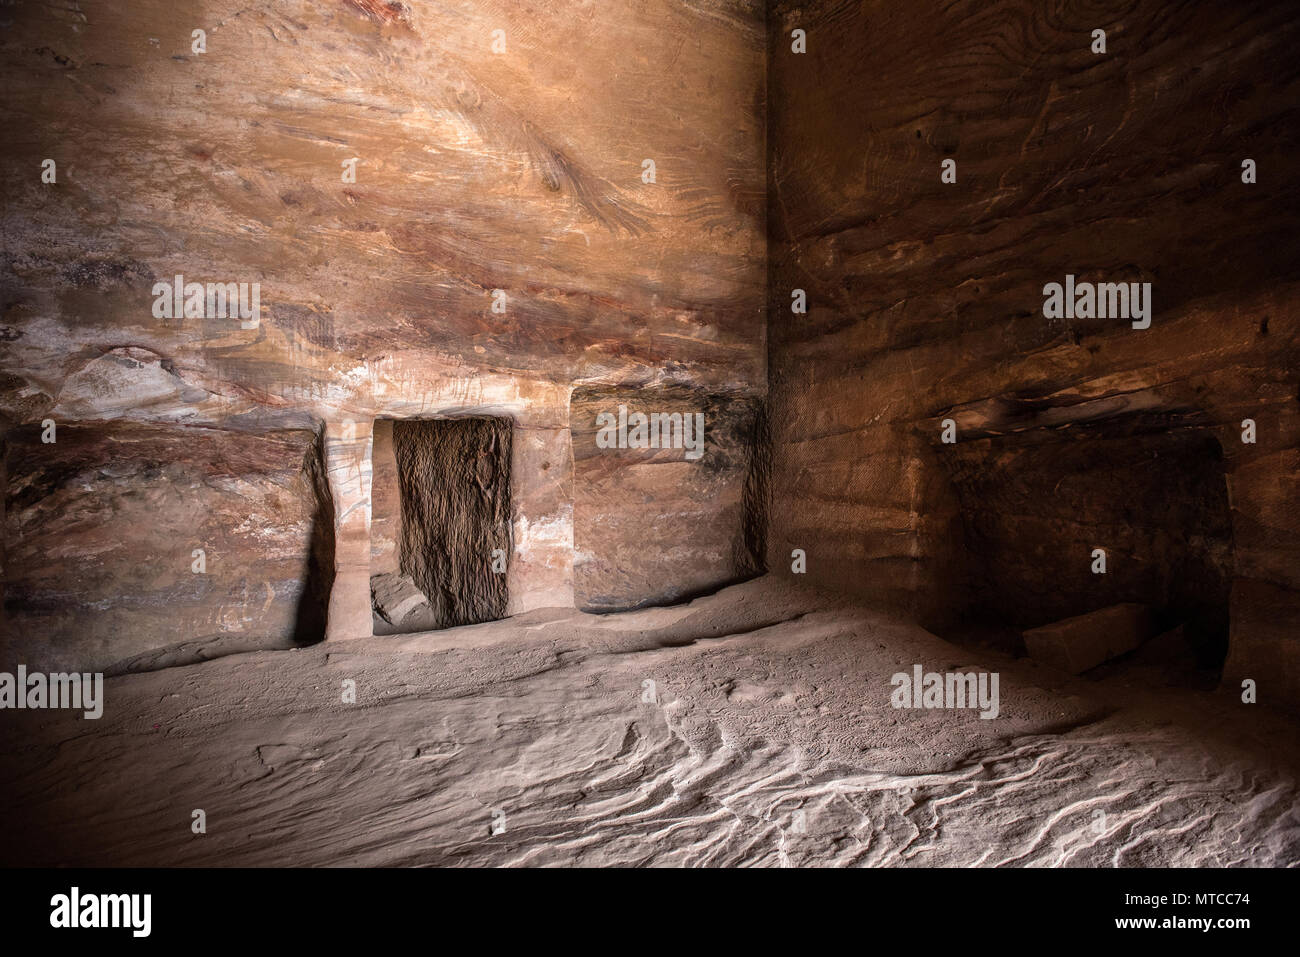 Inside a royal tomb in Petra, Jordan. Underground ancient rock carving, cave used as burial place - Stock Image